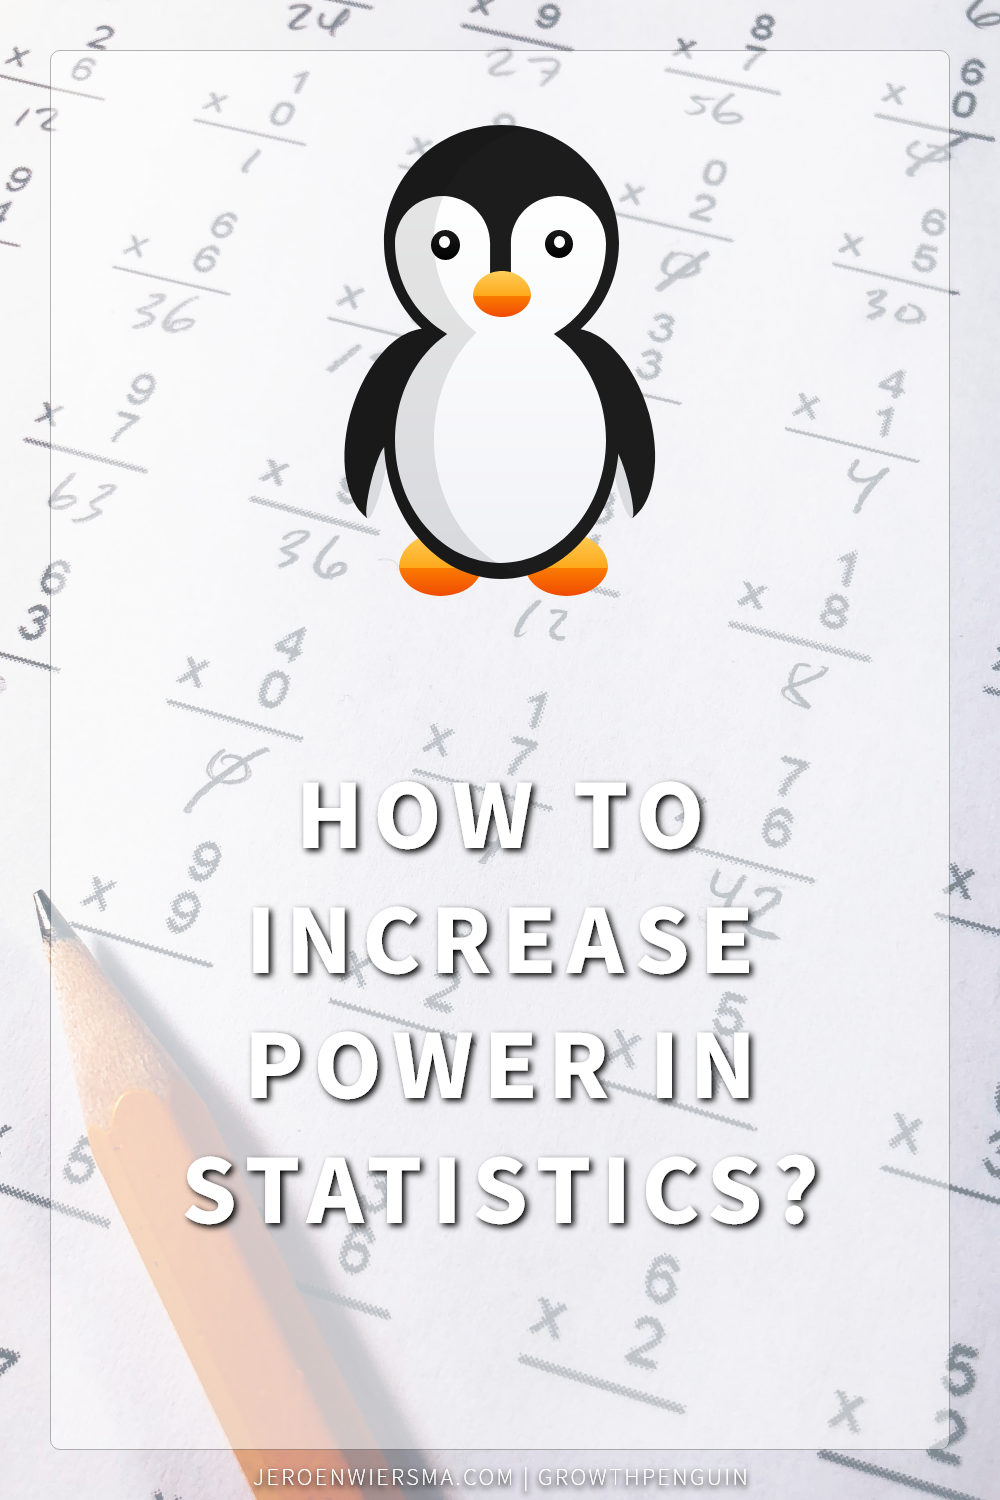 How to increase power in statistics?